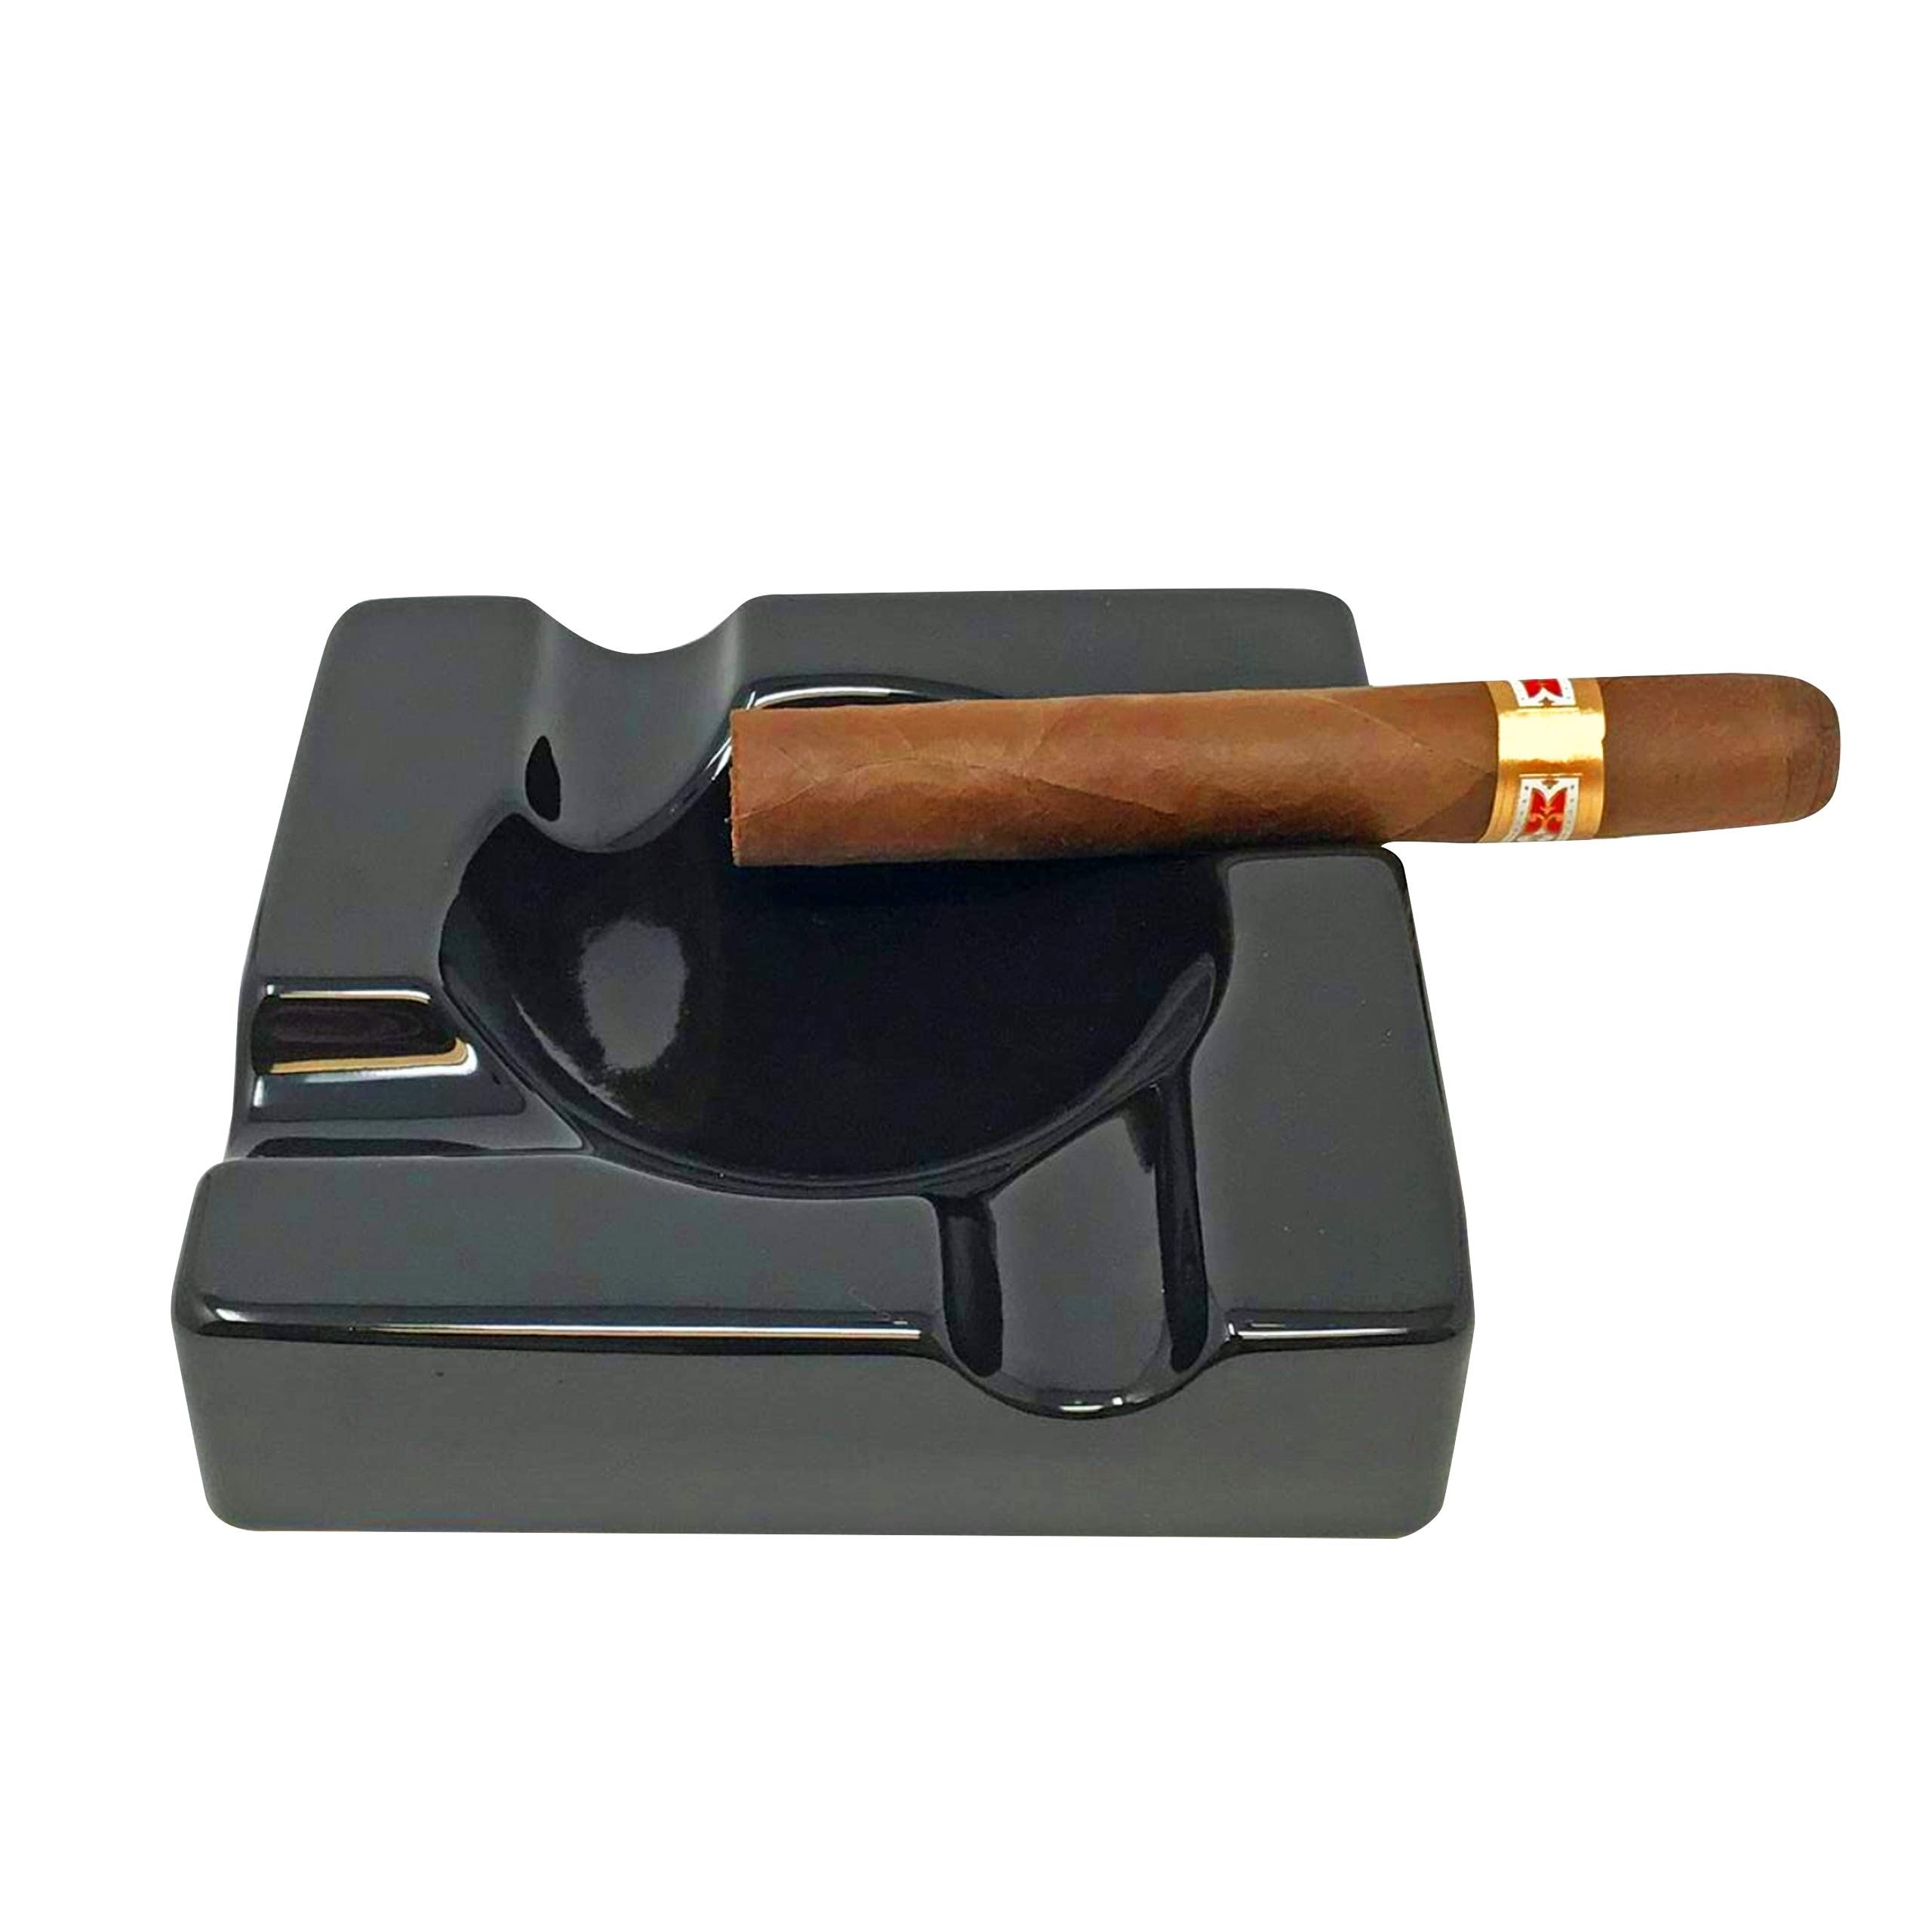 Cigar Ashtray Outdoor Cigarette Ash Tray - 5.9 inch Ceramic Ashtrays Black Glossy Cigar Rest for Indoor, Outdoor, Patio, Home, Office Use - Cigar Accessories Gift Set for Men and Women by Duido